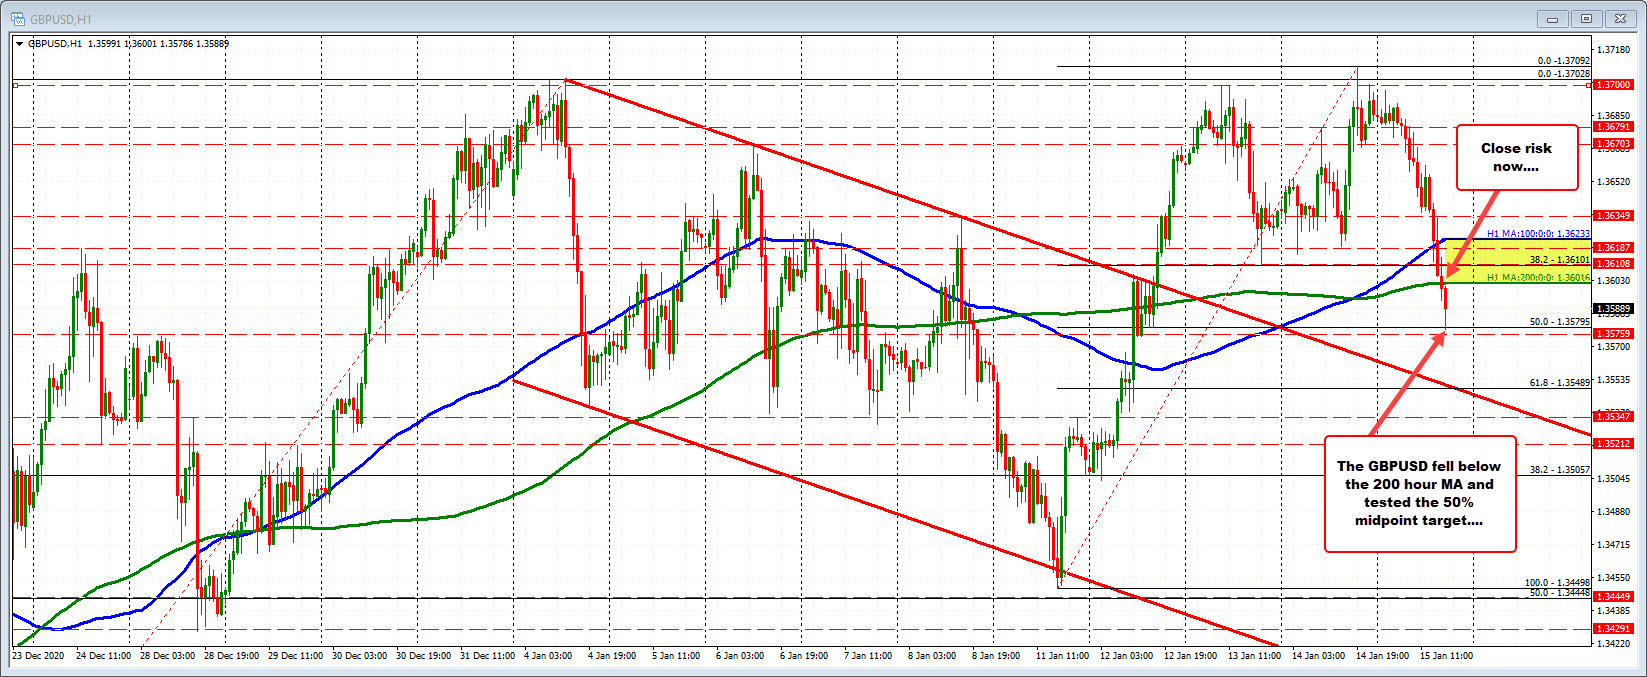 Photo of GBPUSD is testing the midpoint of 50%. Find support buyers